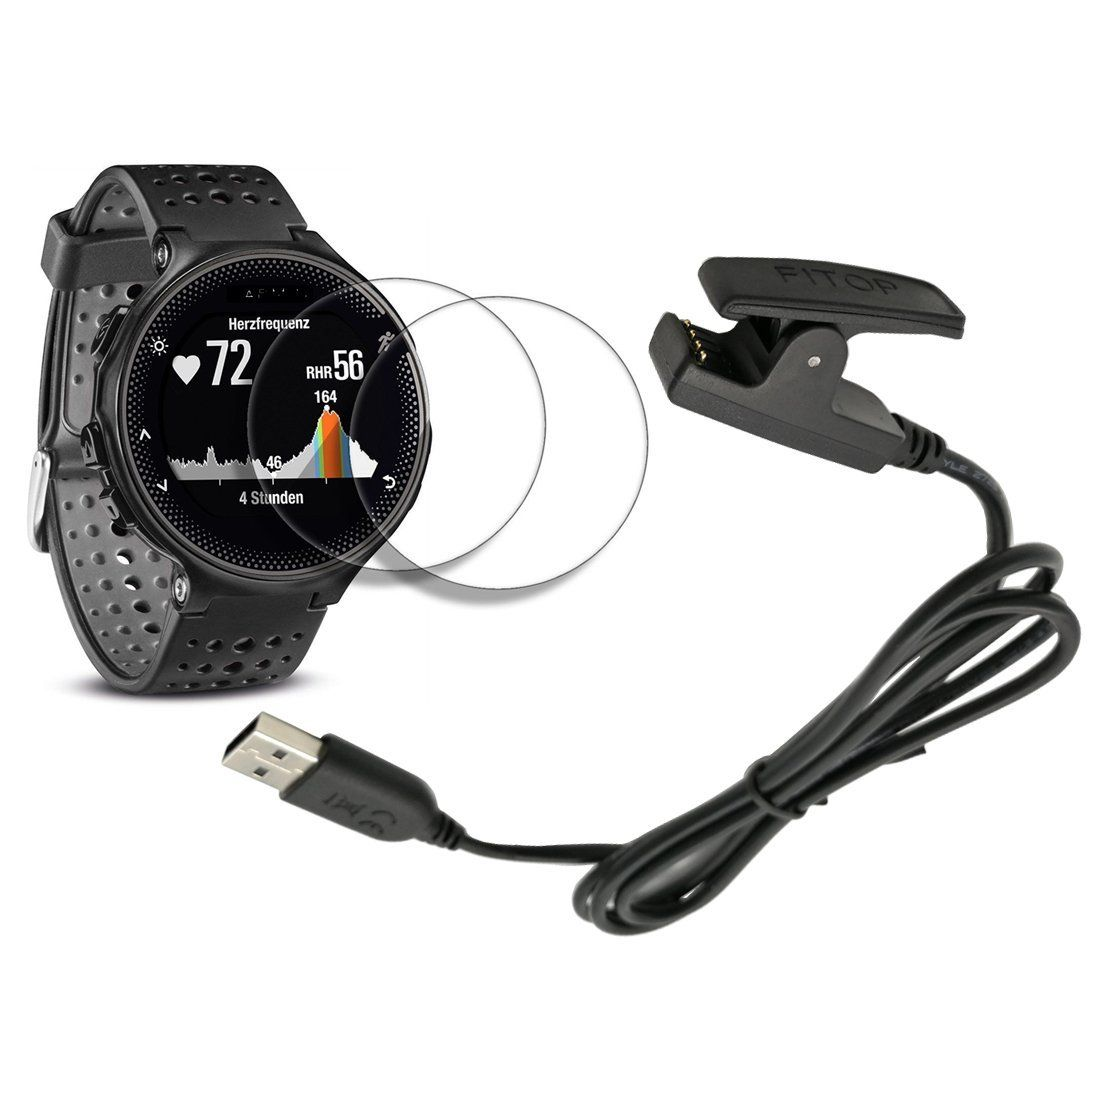 X1 for Garmin forerunner 235 Charger 230 630 Charging Clip Sync Data